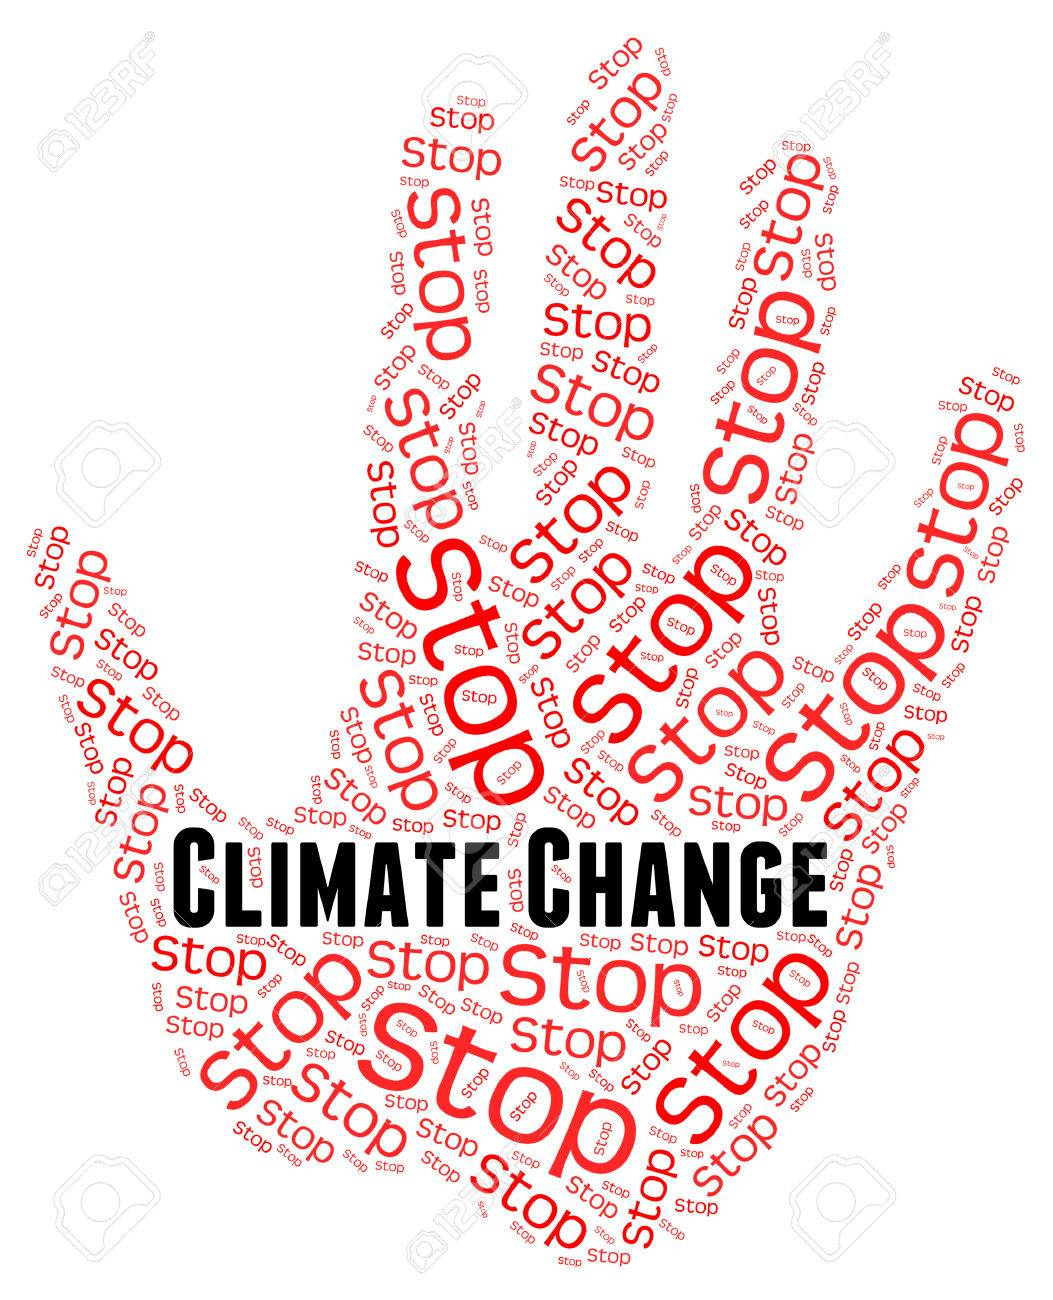 Stop Climate Change Meaning Global Warming And Rethink Stock Photo